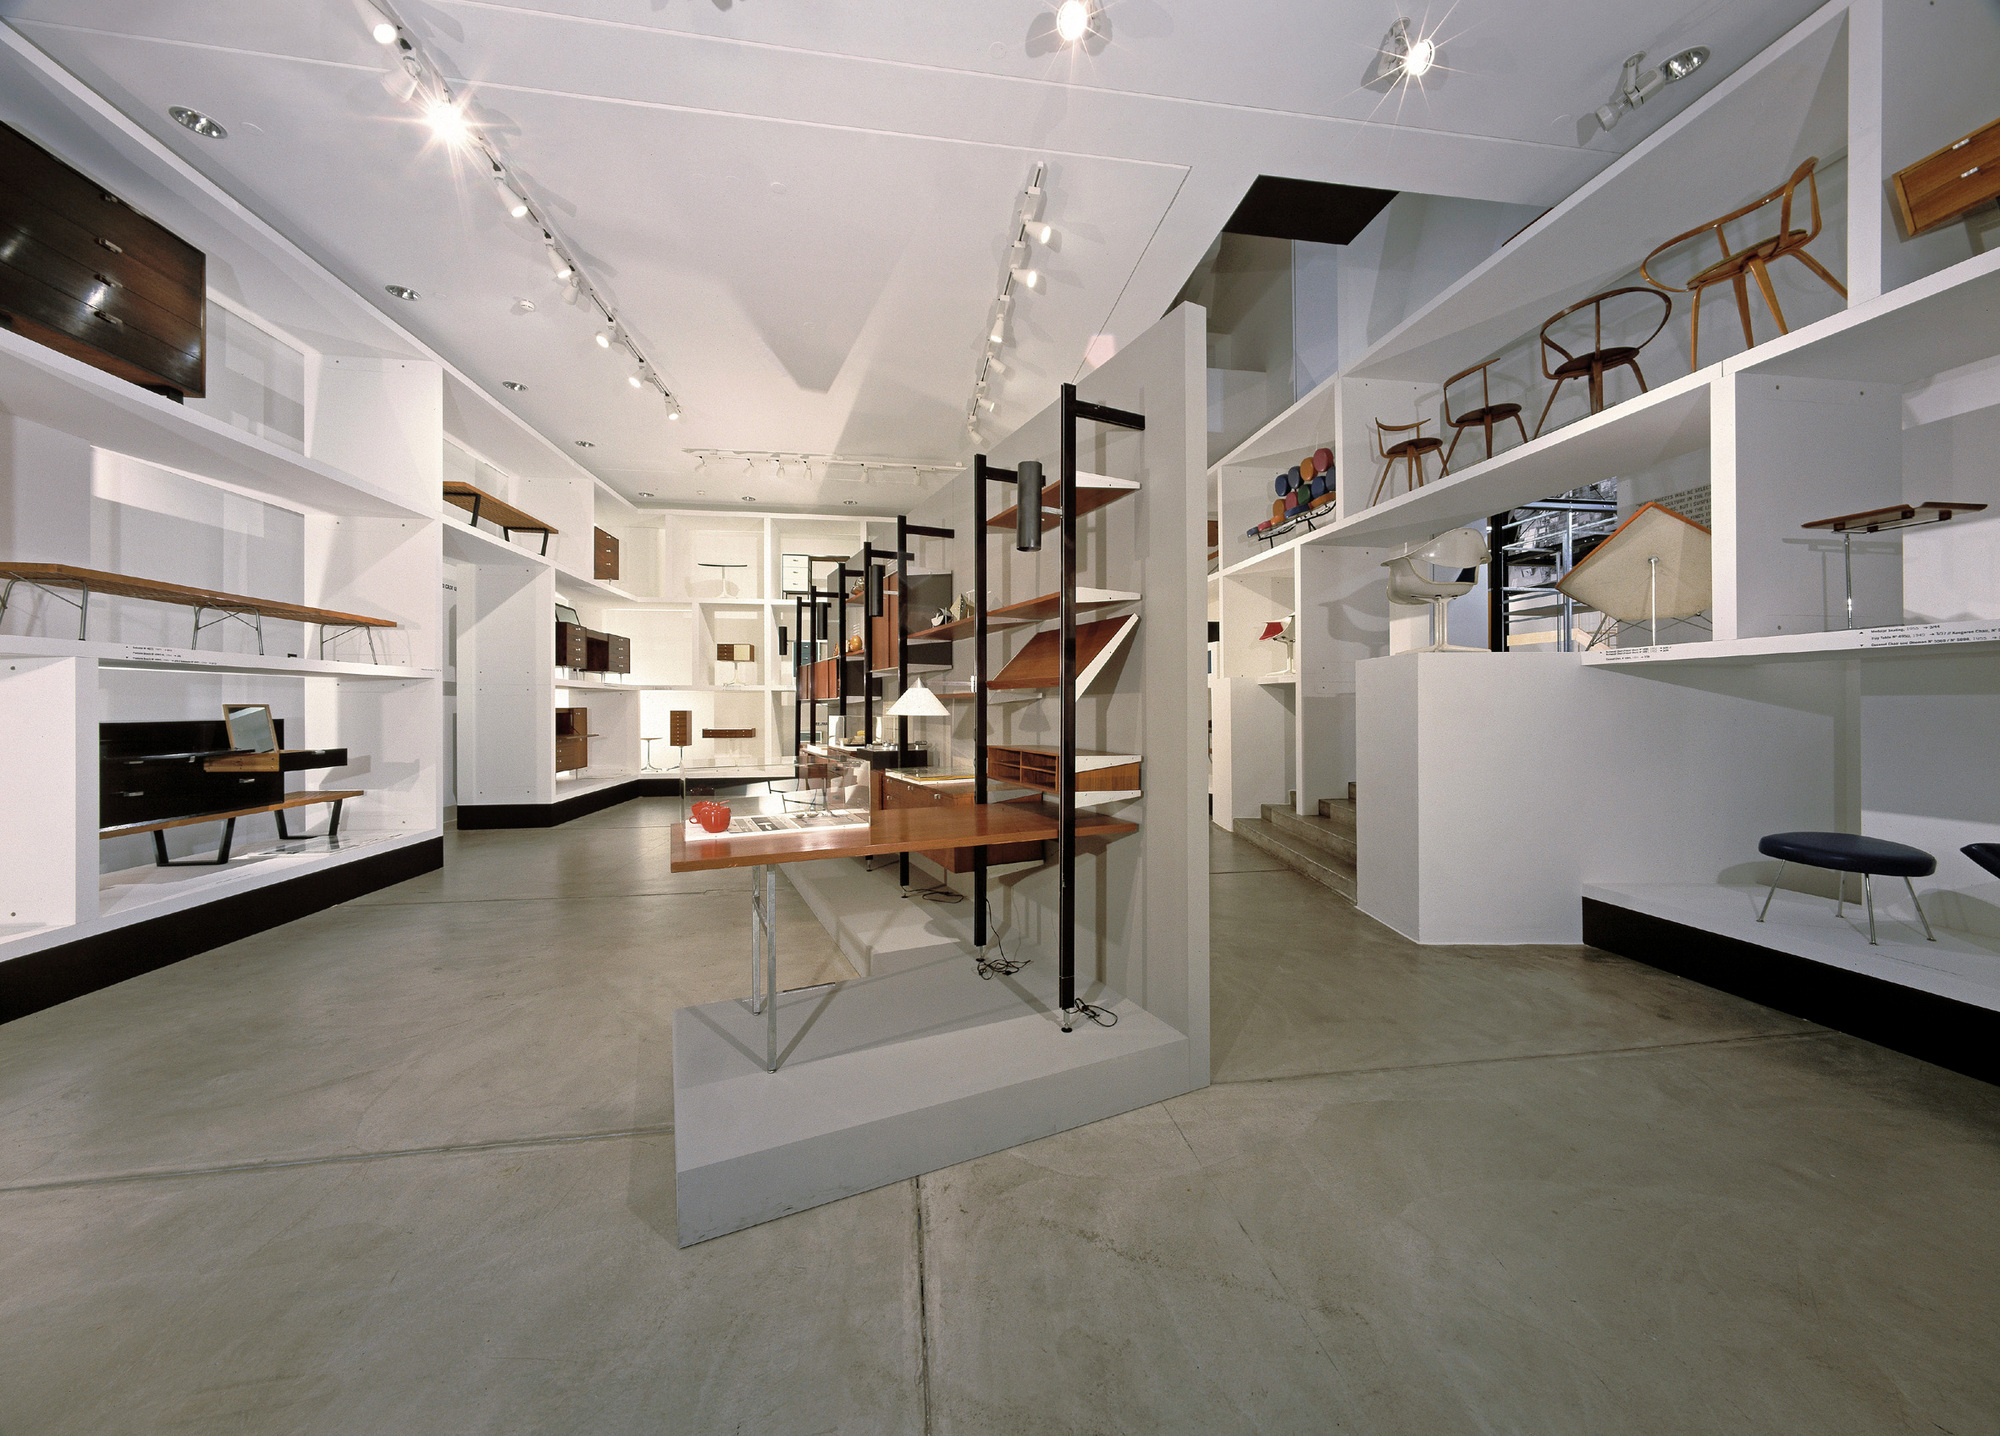 vitra design museum george nelson installation archdaily. Black Bedroom Furniture Sets. Home Design Ideas